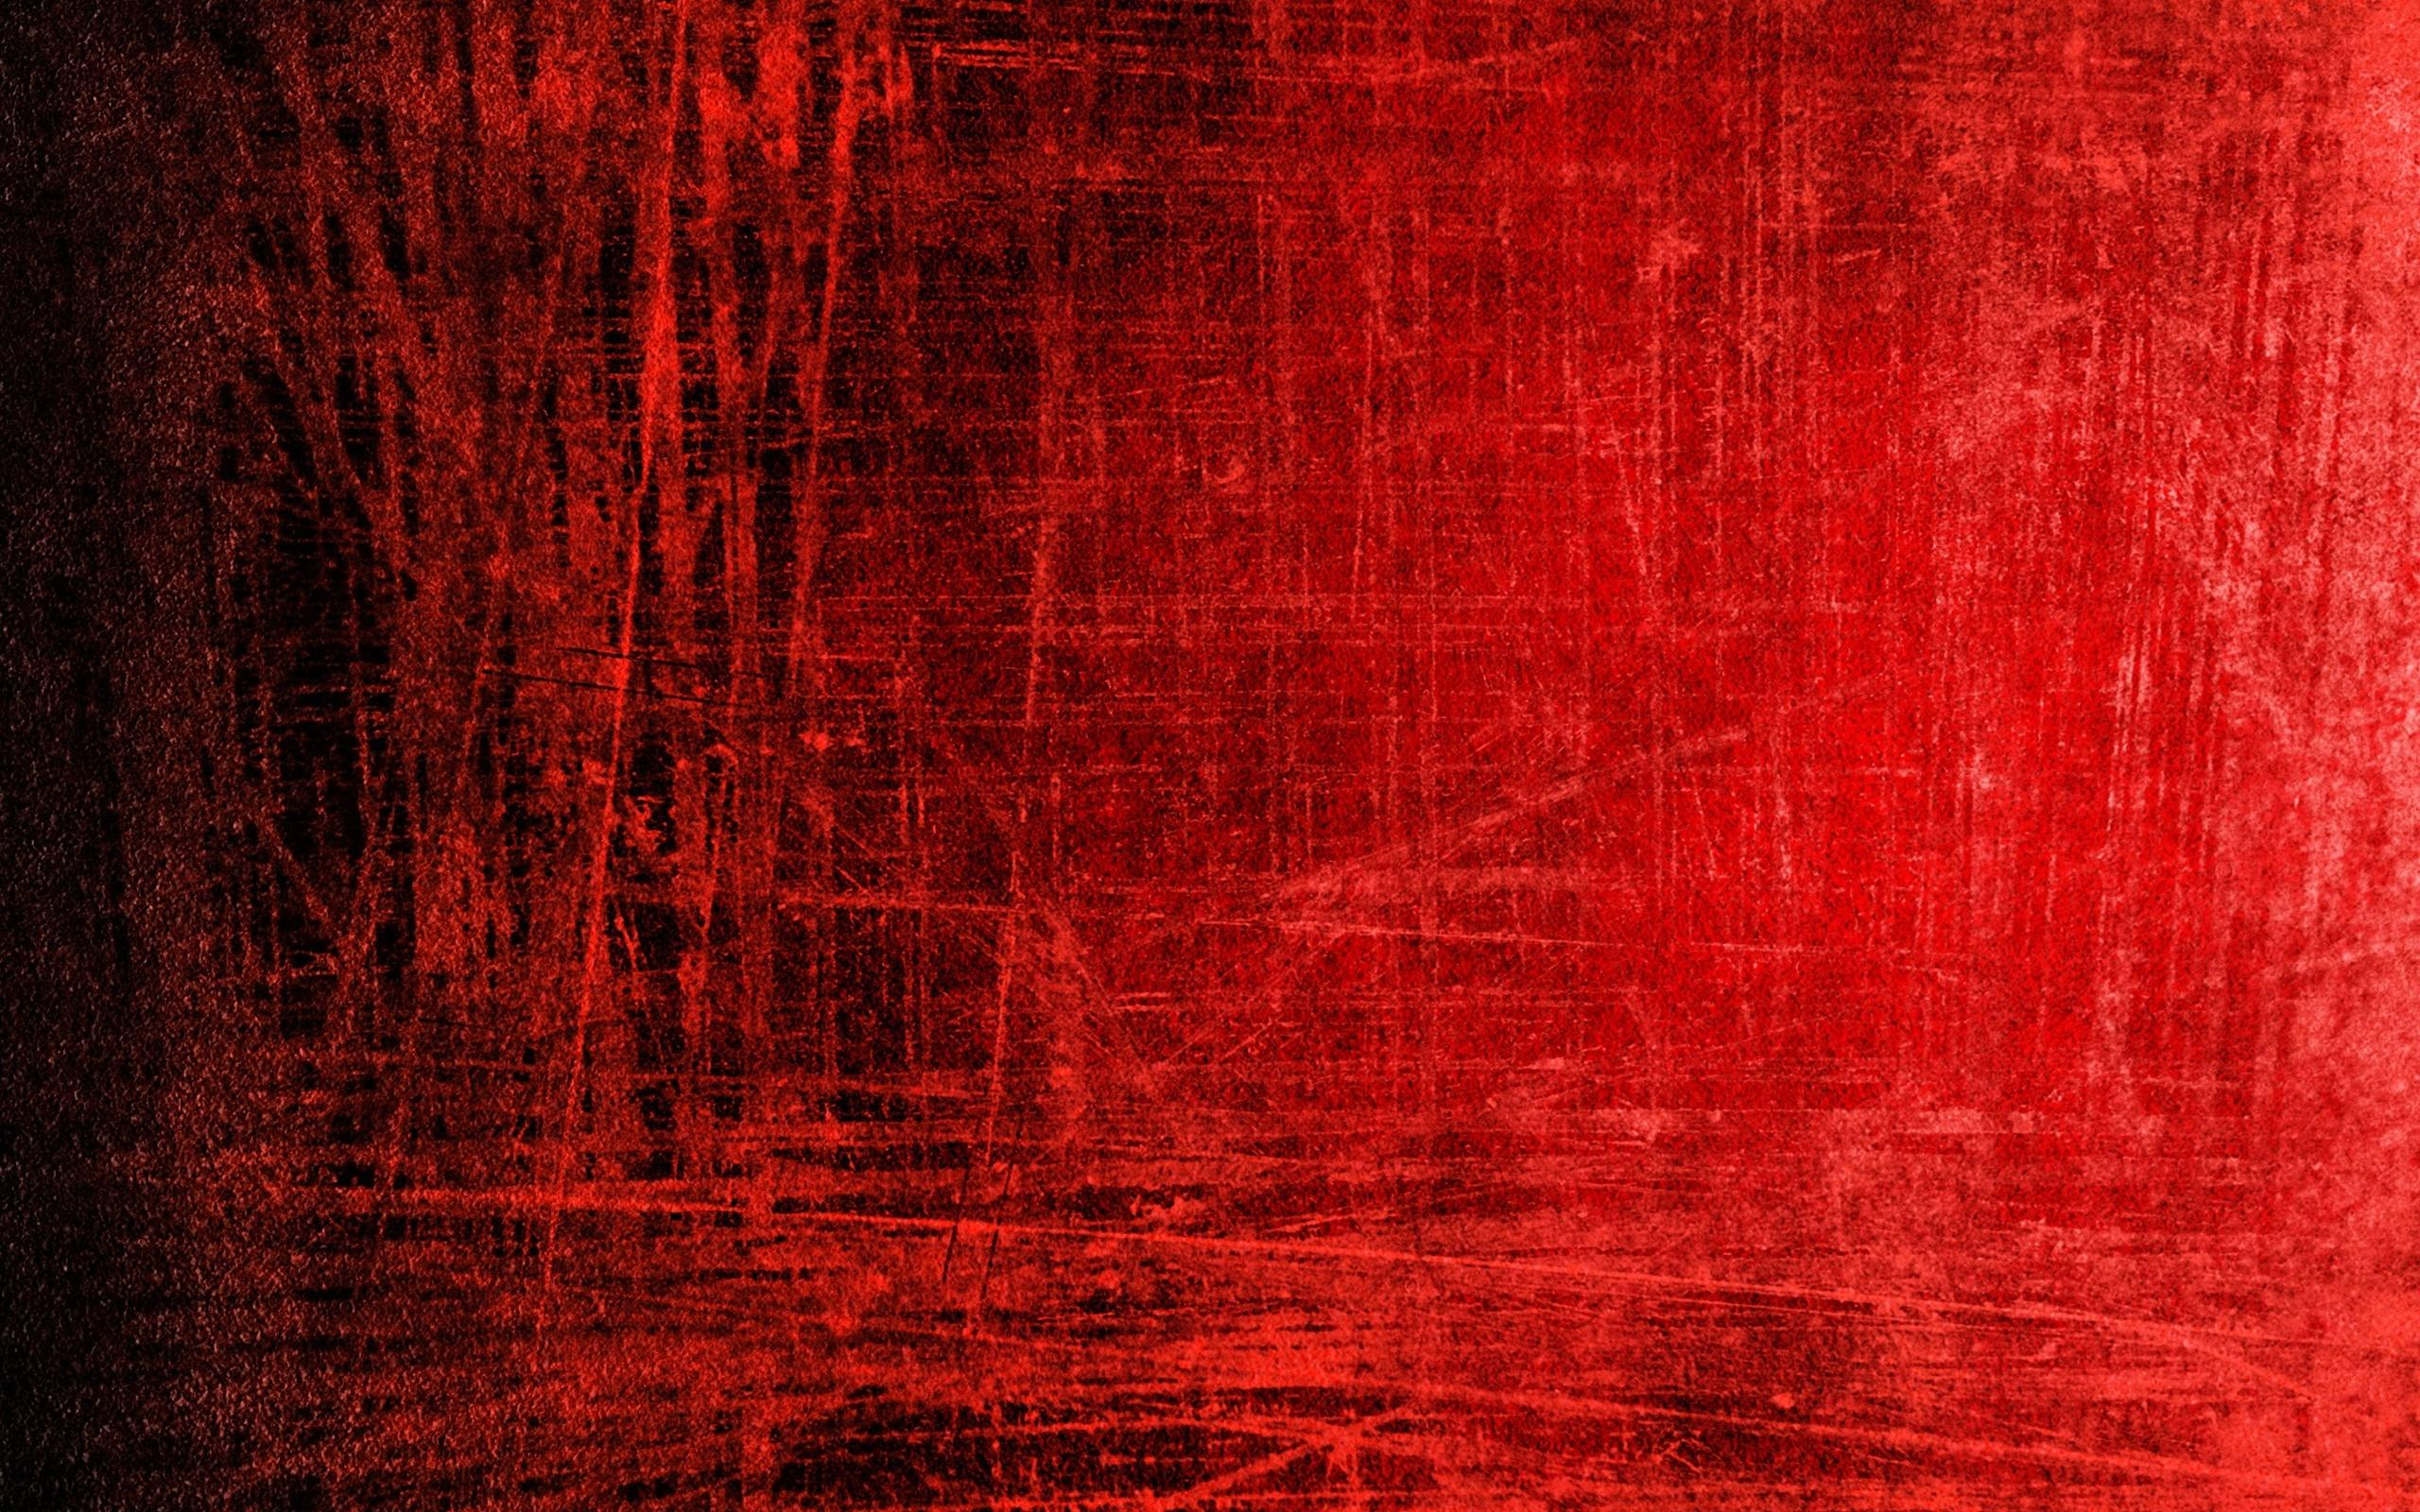 New 3d Hd Wallpaper Free Download Red Background Fullscreen Hd 6417 Wallpaper Walldiskpaper